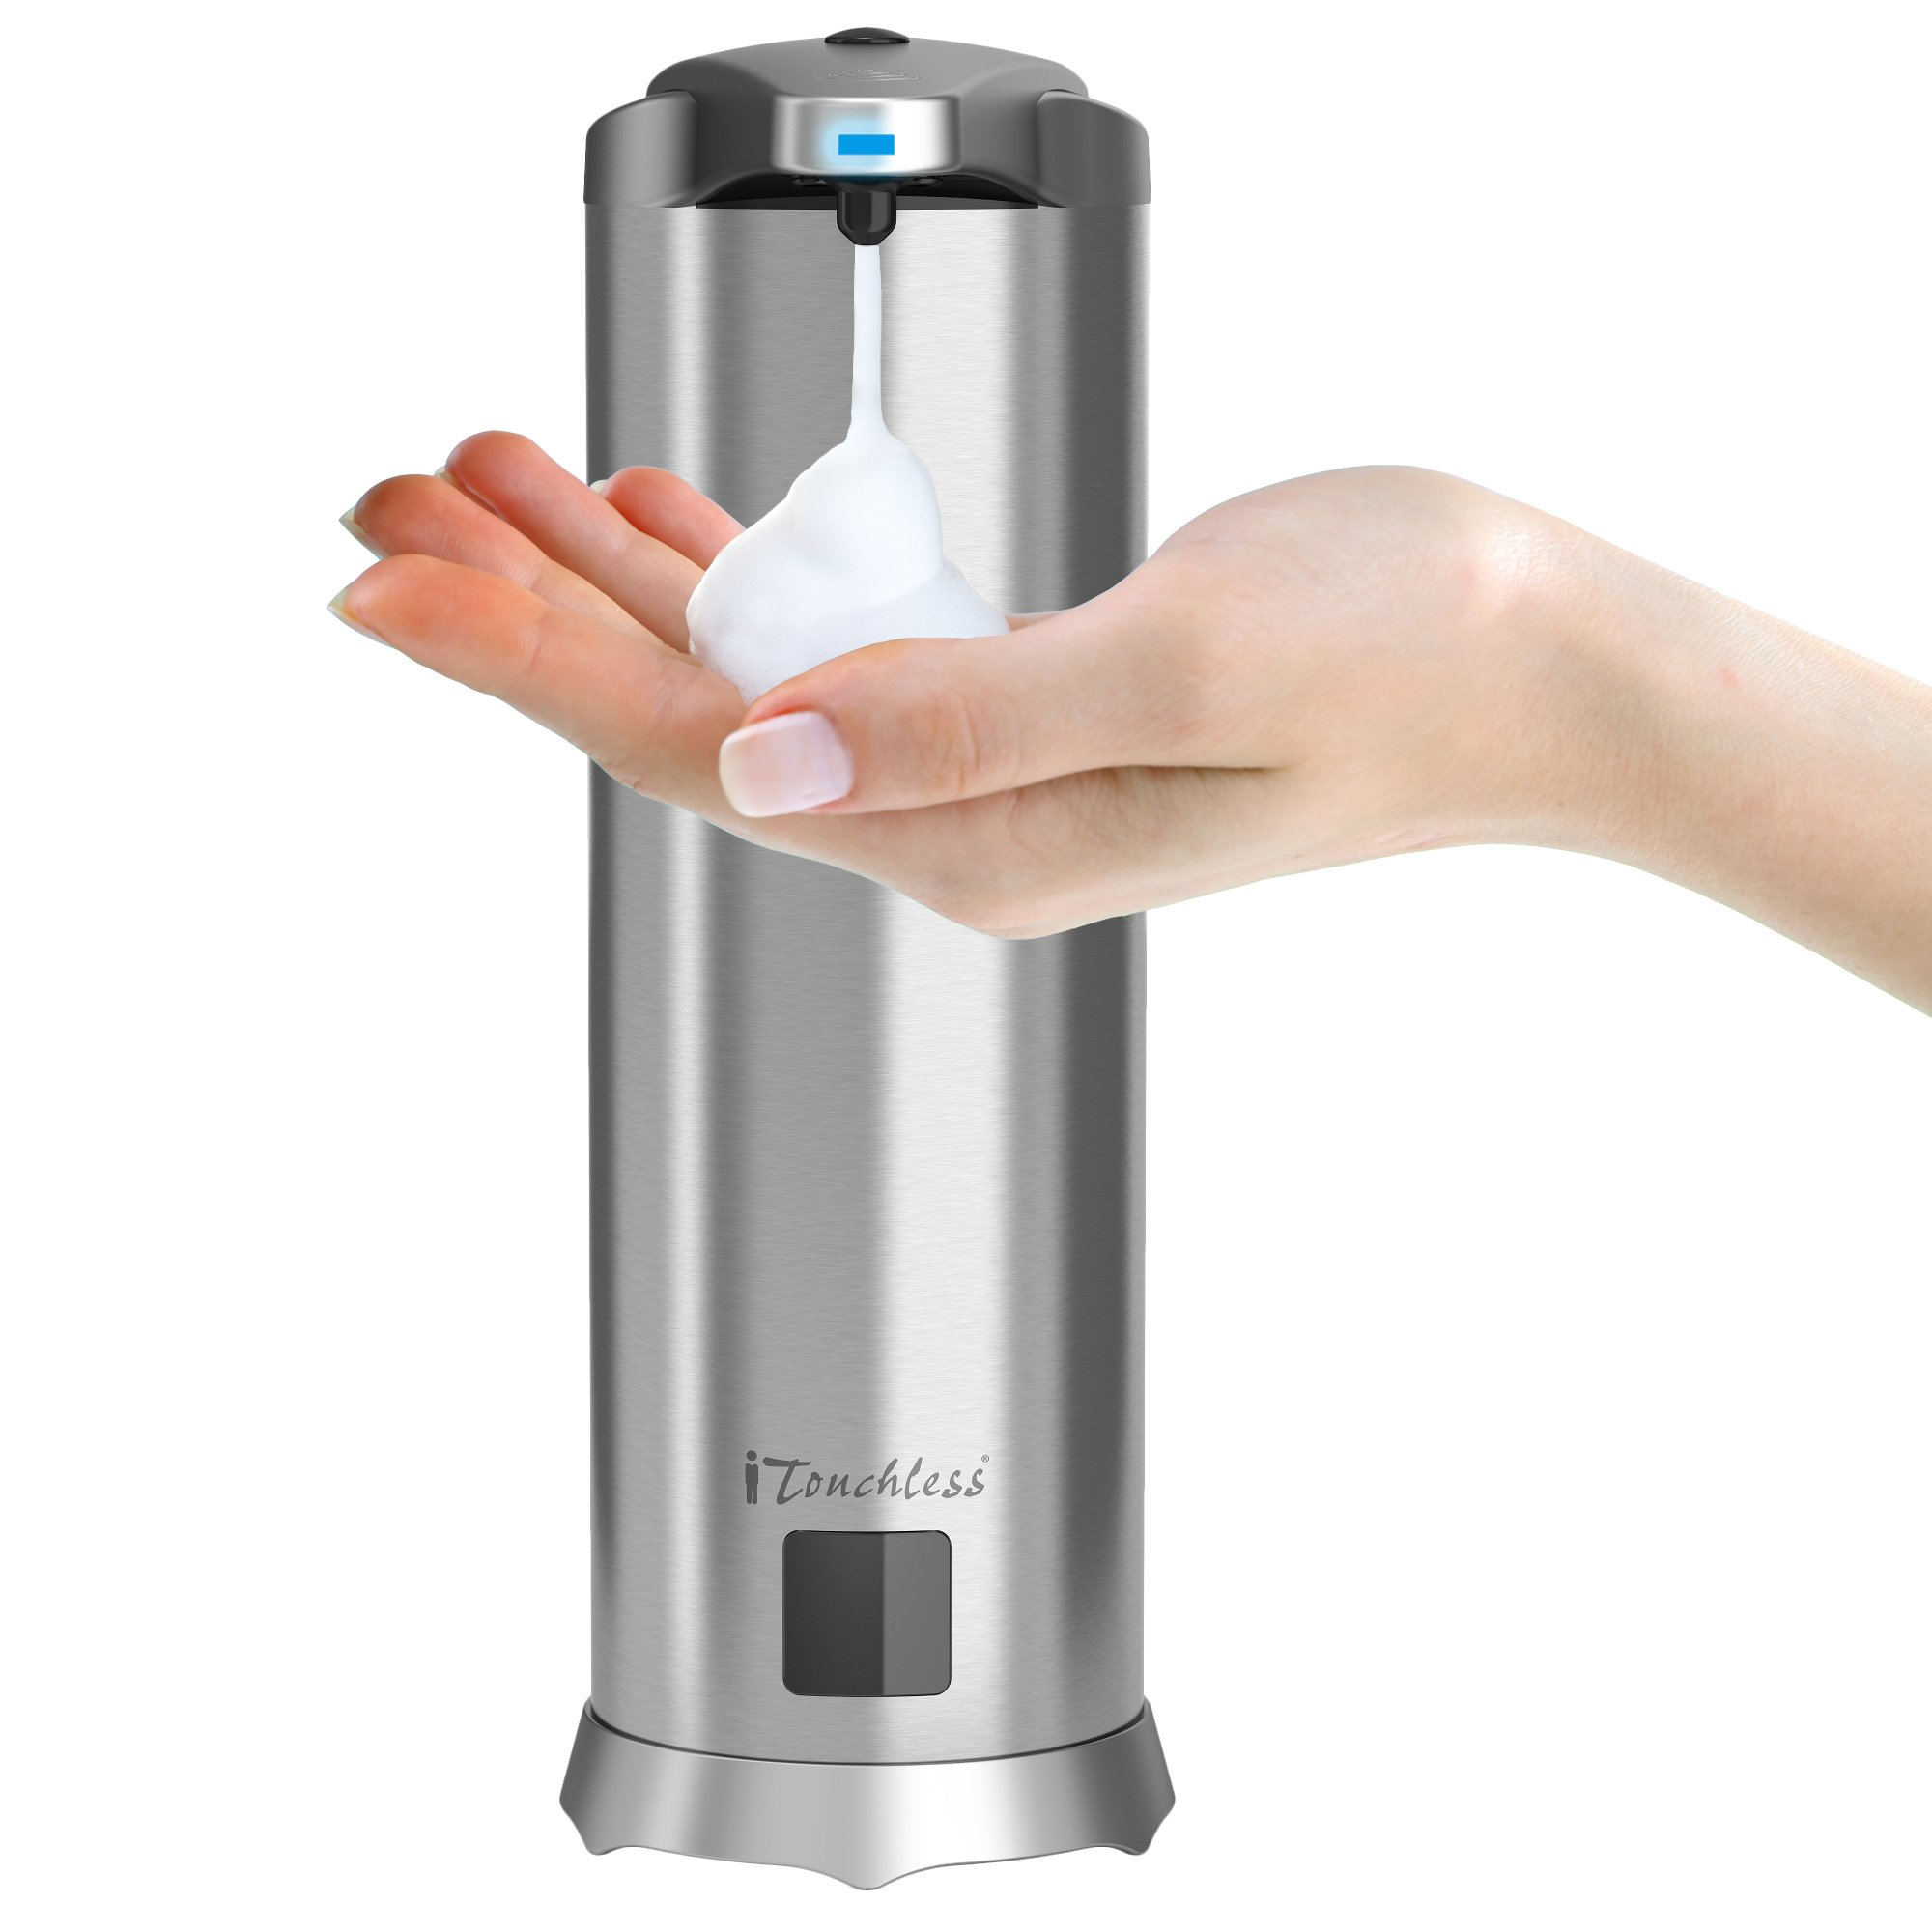 iTouchless SFC001D Ultraclean Automatic Foam Soap Dispenser, Rust-Free Stainless Steel Sensor 28 Fl. Oz, Touchless Pump for Bathroom and Kitchen